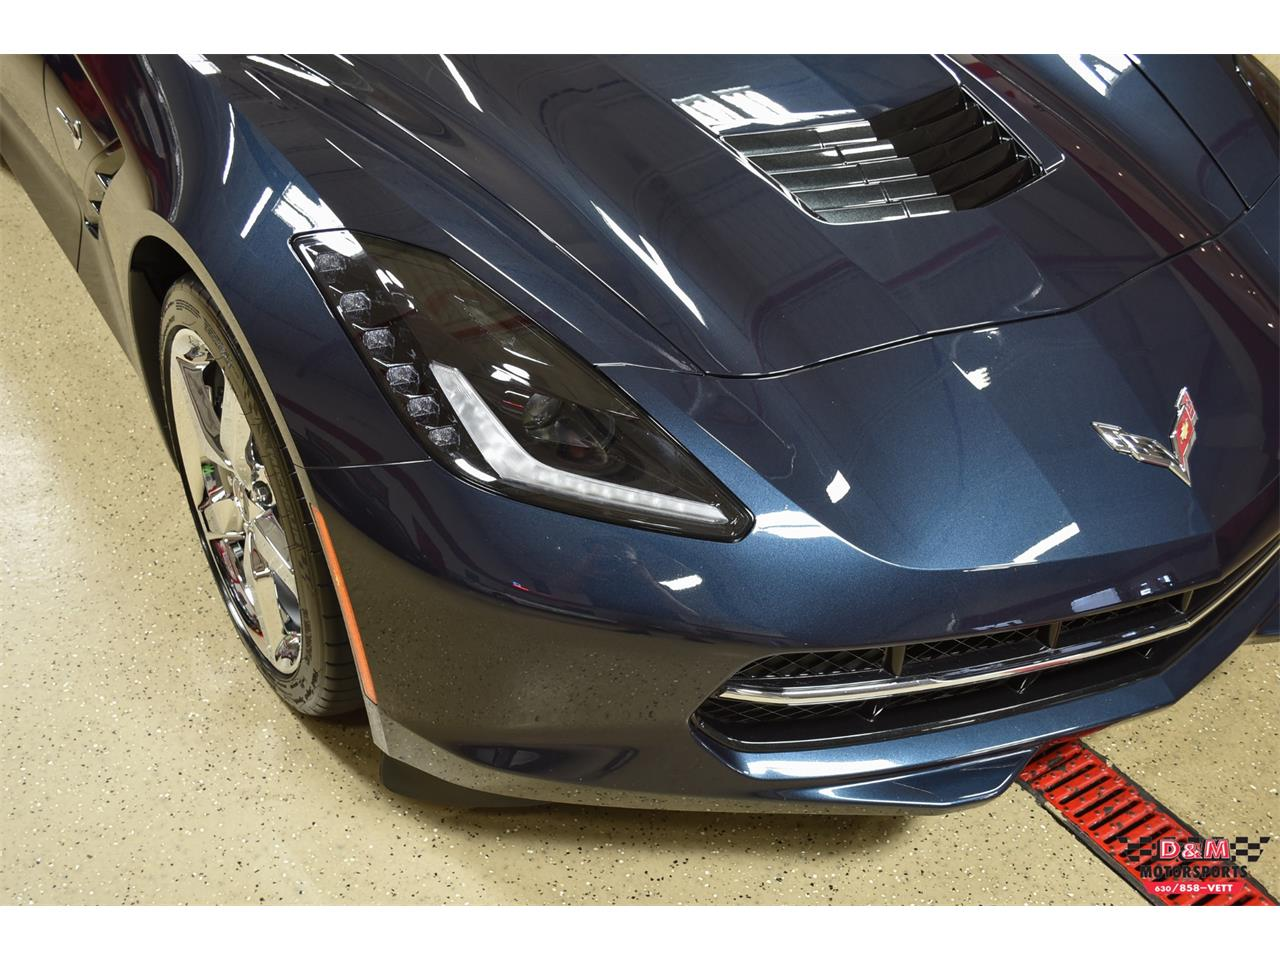 Large Picture of 2015 Chevrolet Corvette located in Illinois Offered by D & M Motorsports - QGAK